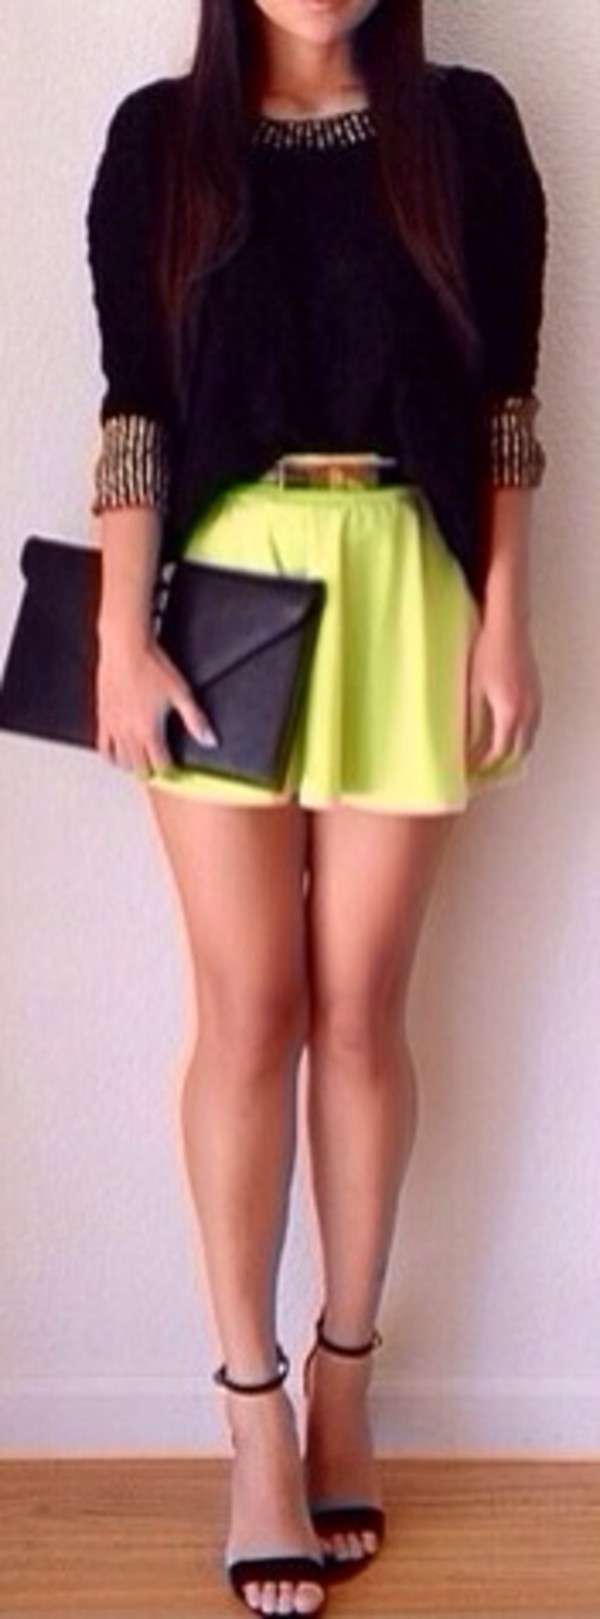 bag black clutch black high heels neon shirt neon yellow t-shirt skirt shoes jacket